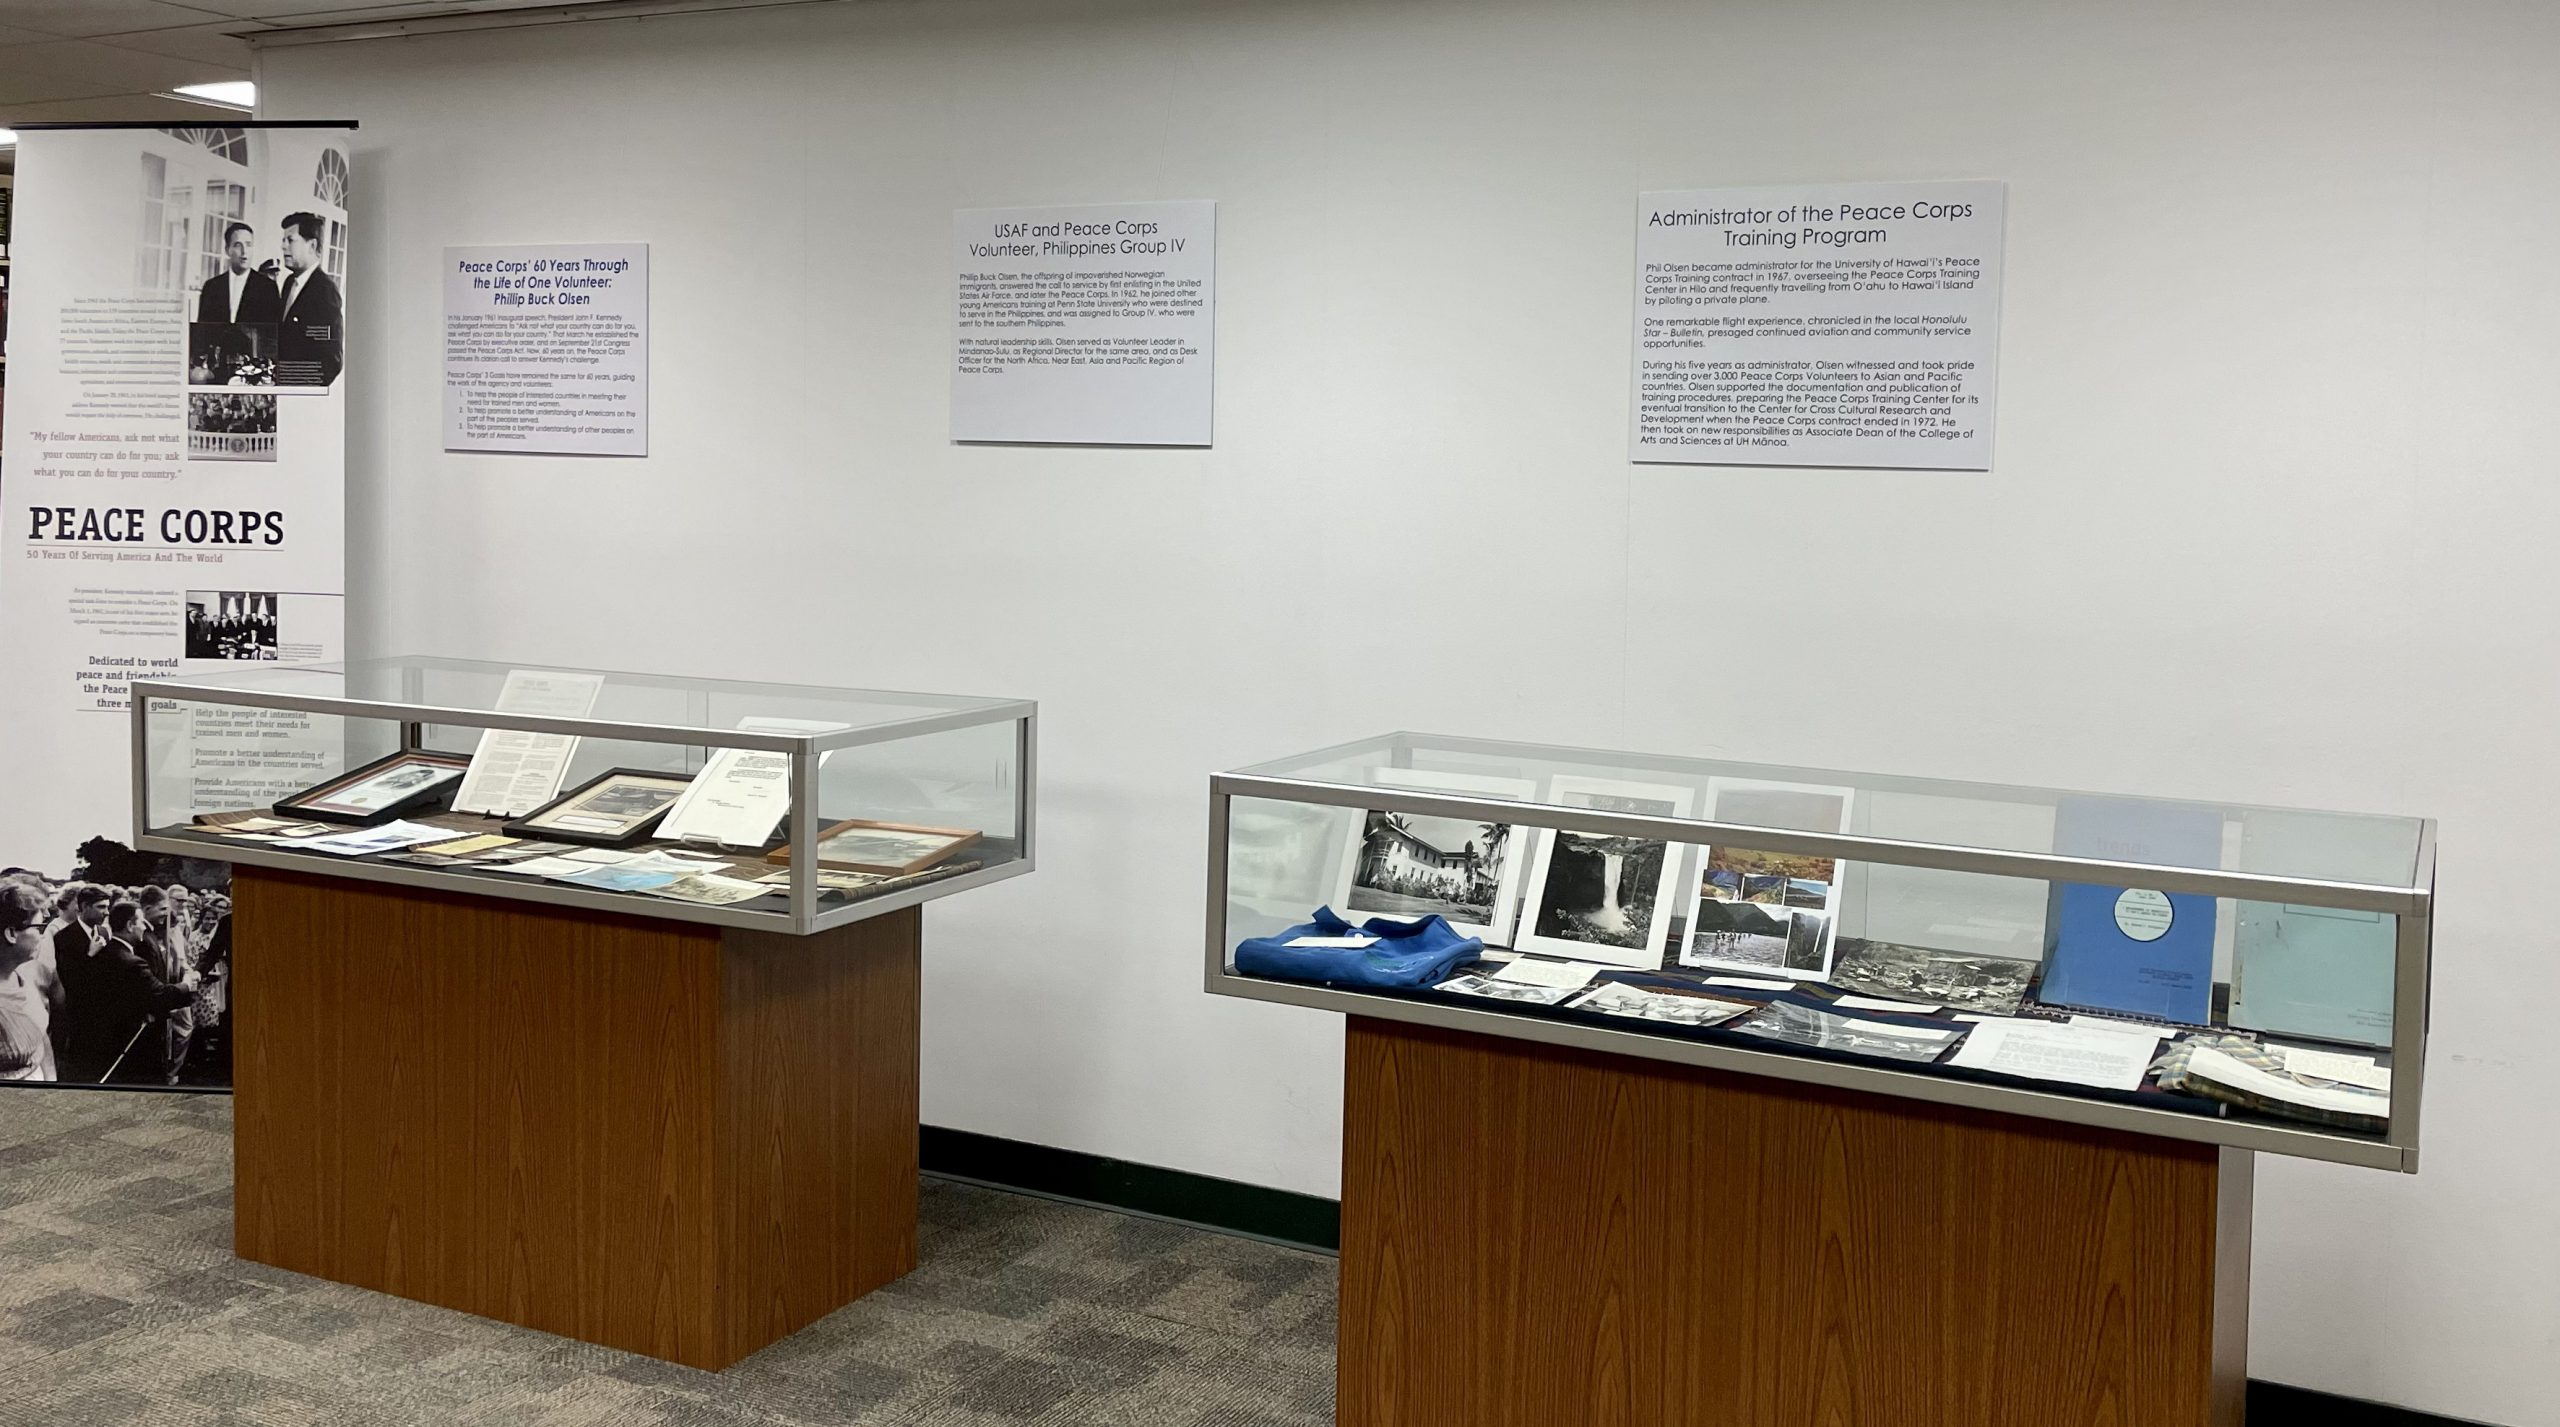 Peace Corps exhibit two display cases with images and texts 1 of 6